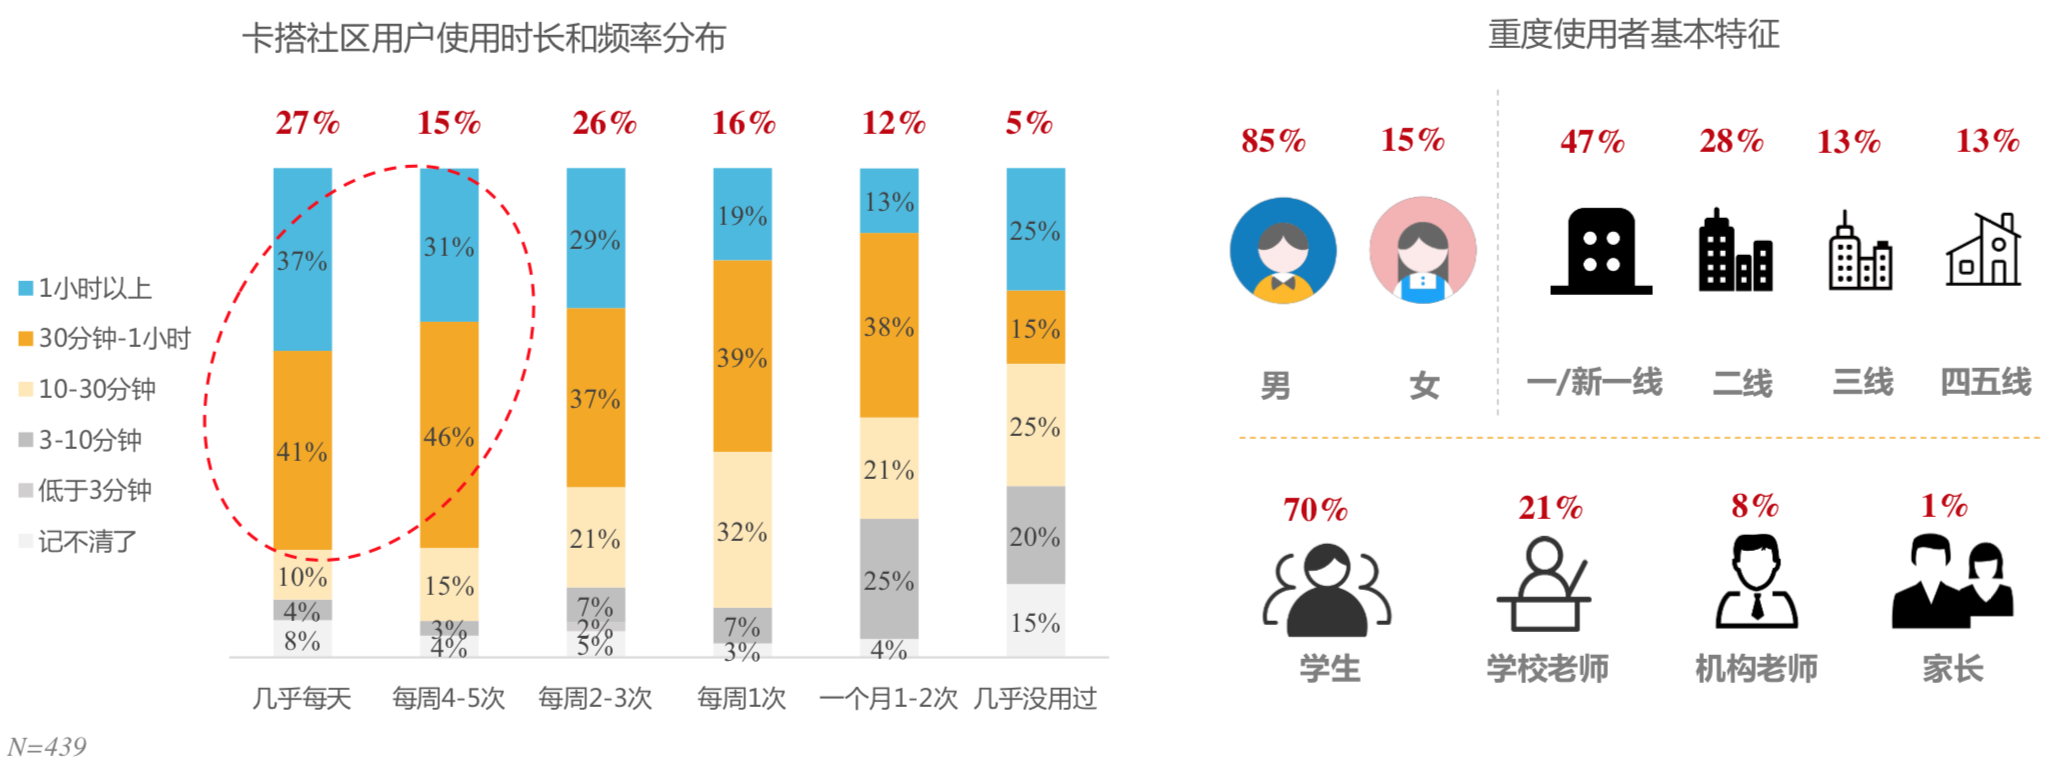 Figure 3.4: Breakdown of frequency and time span, demonstrating how often and how much time users spend on KADA. Everyday and 4-5 times/week were considered to be heavy users (left); heavy user breakdown by gender and city